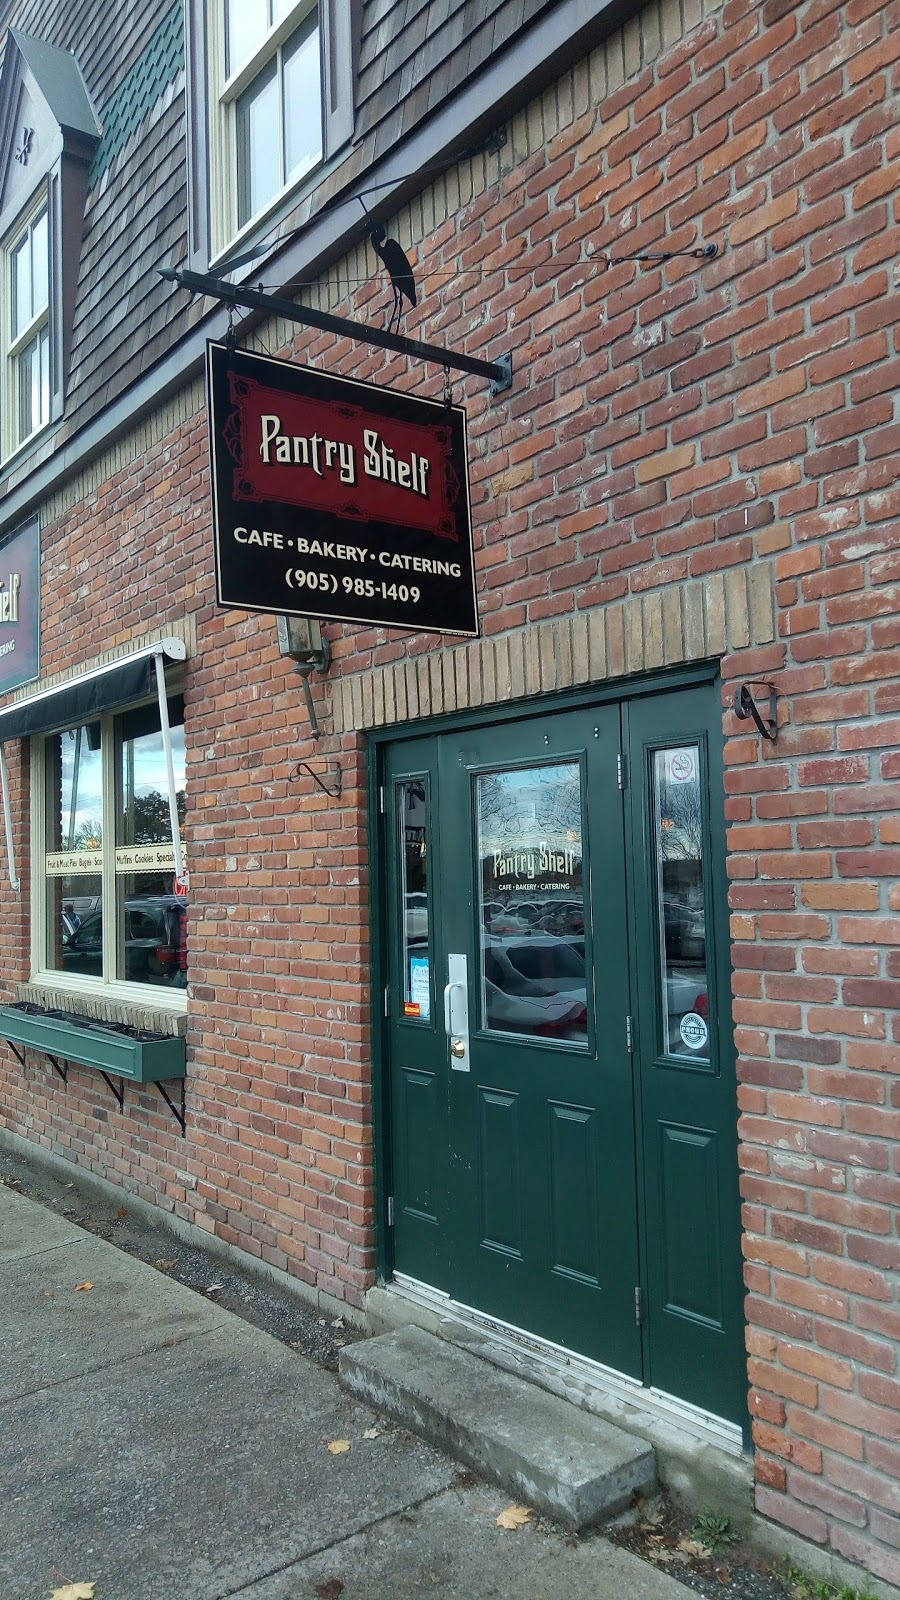 Pantry Shelf The Cafe Bakery & Fine Foods | bakery | 172 Water St, Port Perry, ON L9L 1C4, Canada | 9059851409 OR +1 905-985-1409